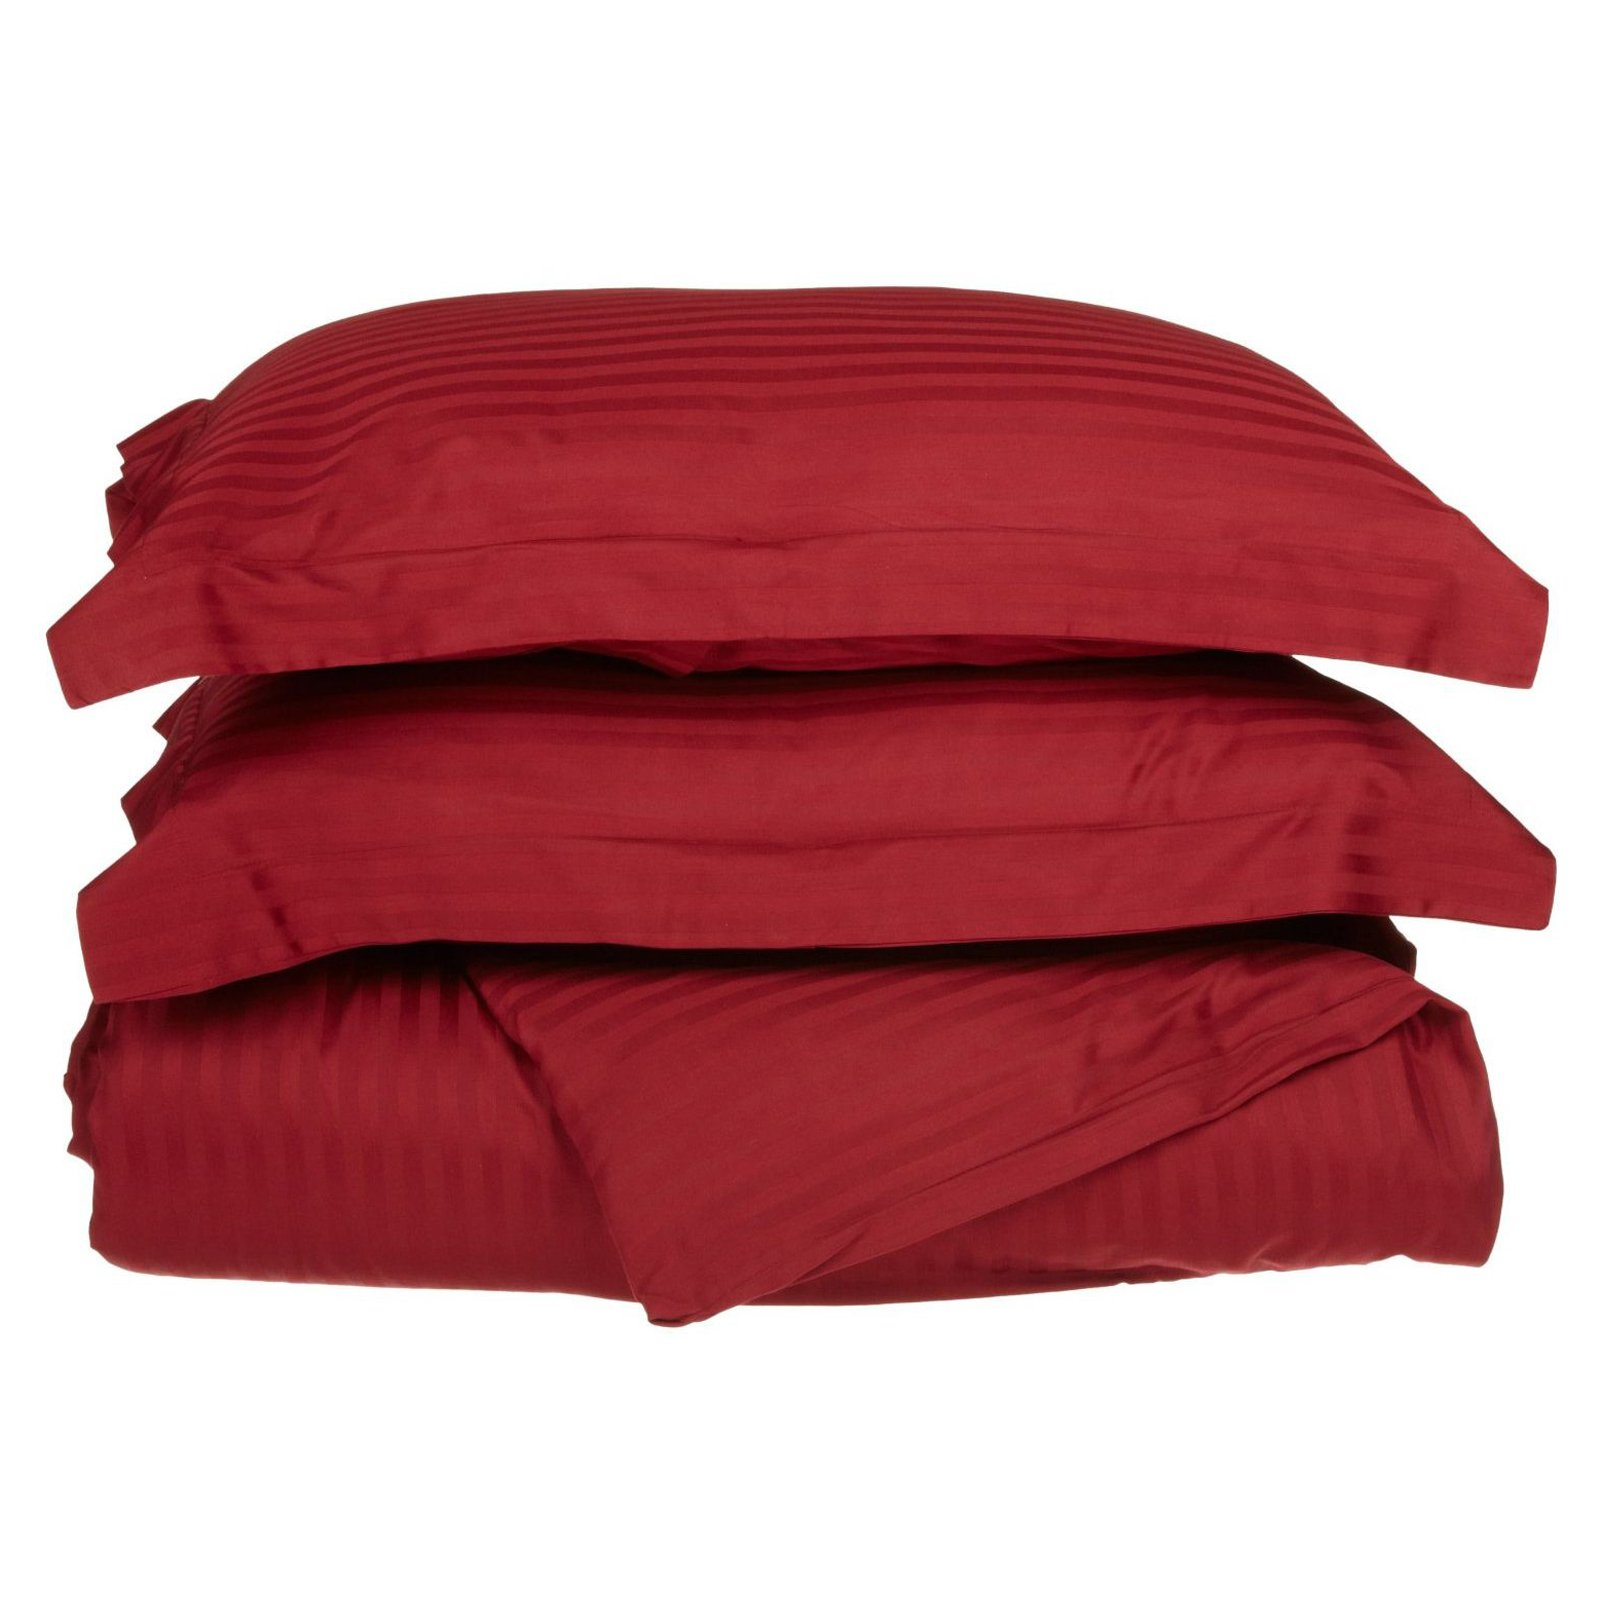 Vanessa Collection 1500 Series Microfiber Wrinkle Resistant Stripe Duvet Cover Set by Superior